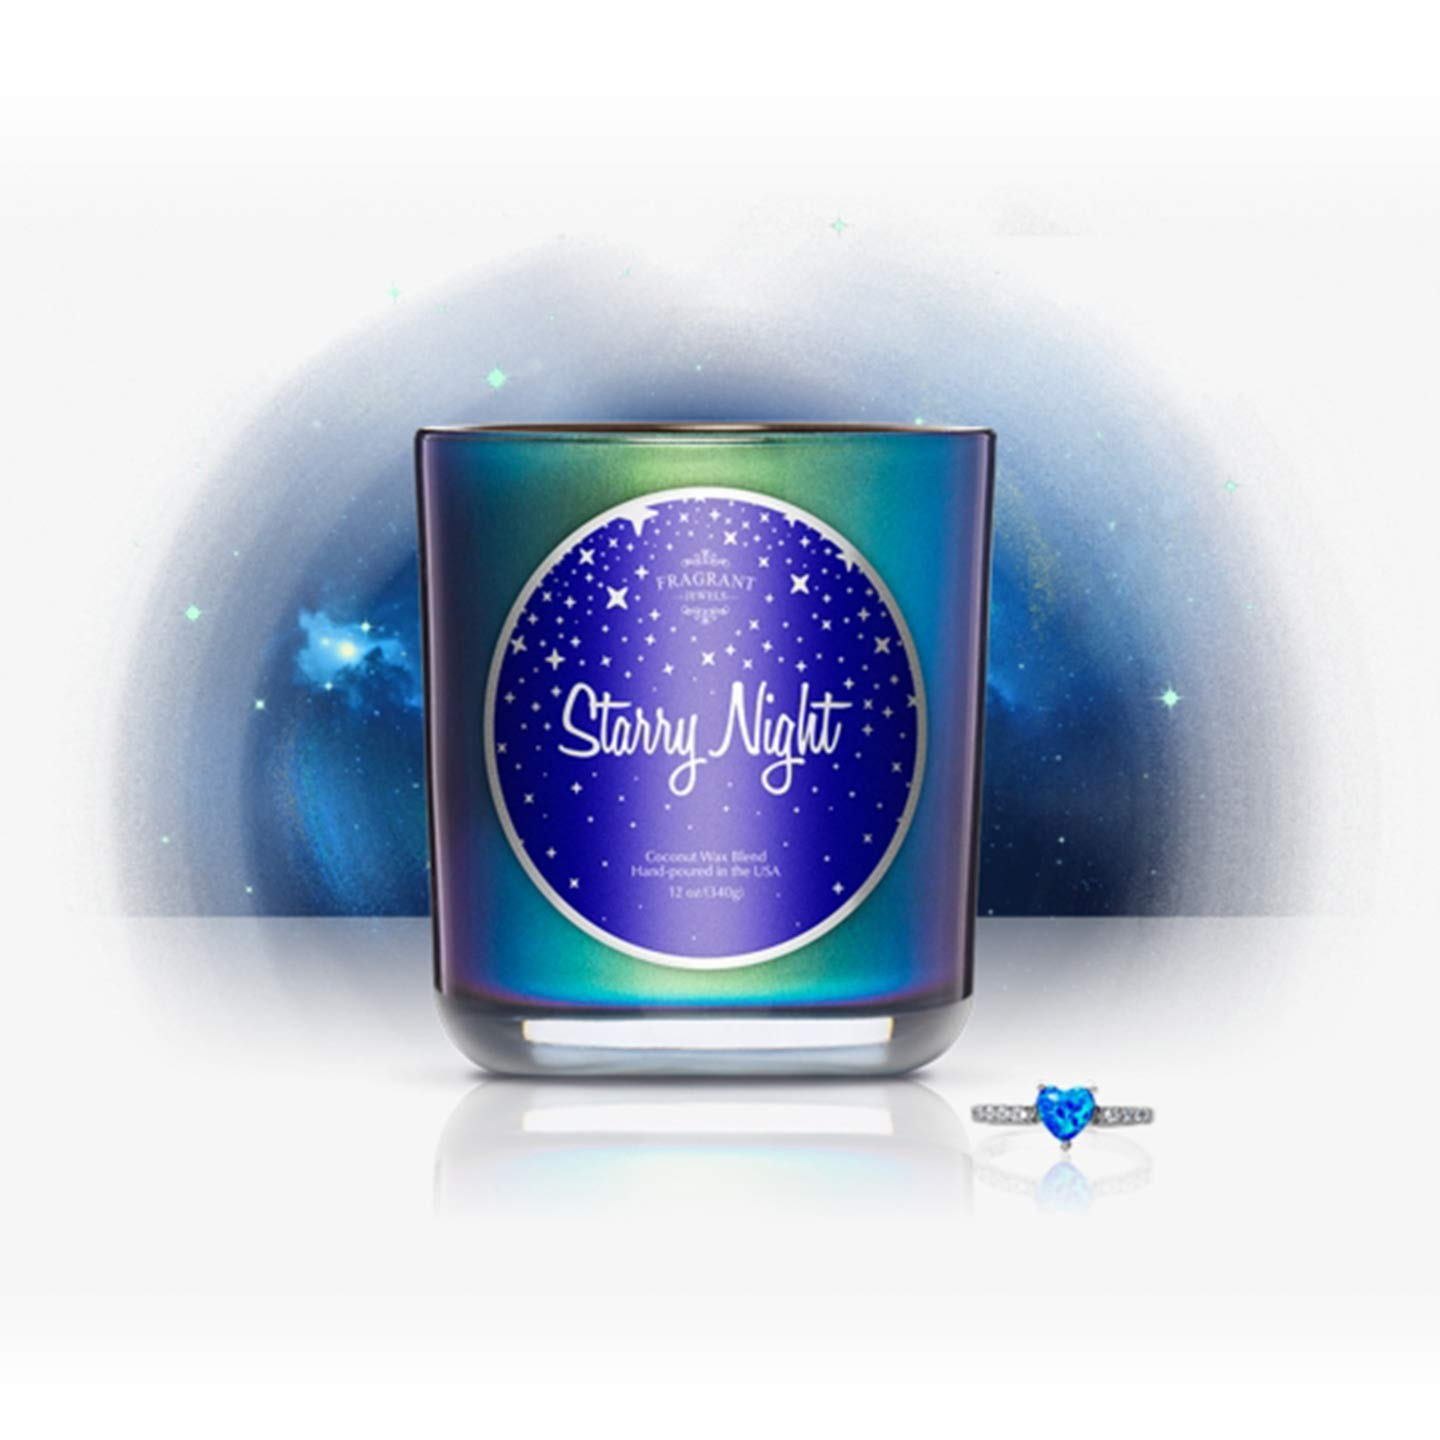 Fragrant Jewels Starry Night Jewel Candle with Collectible Rings (Size 5-10) by Fragrant Jewels (Image #3)